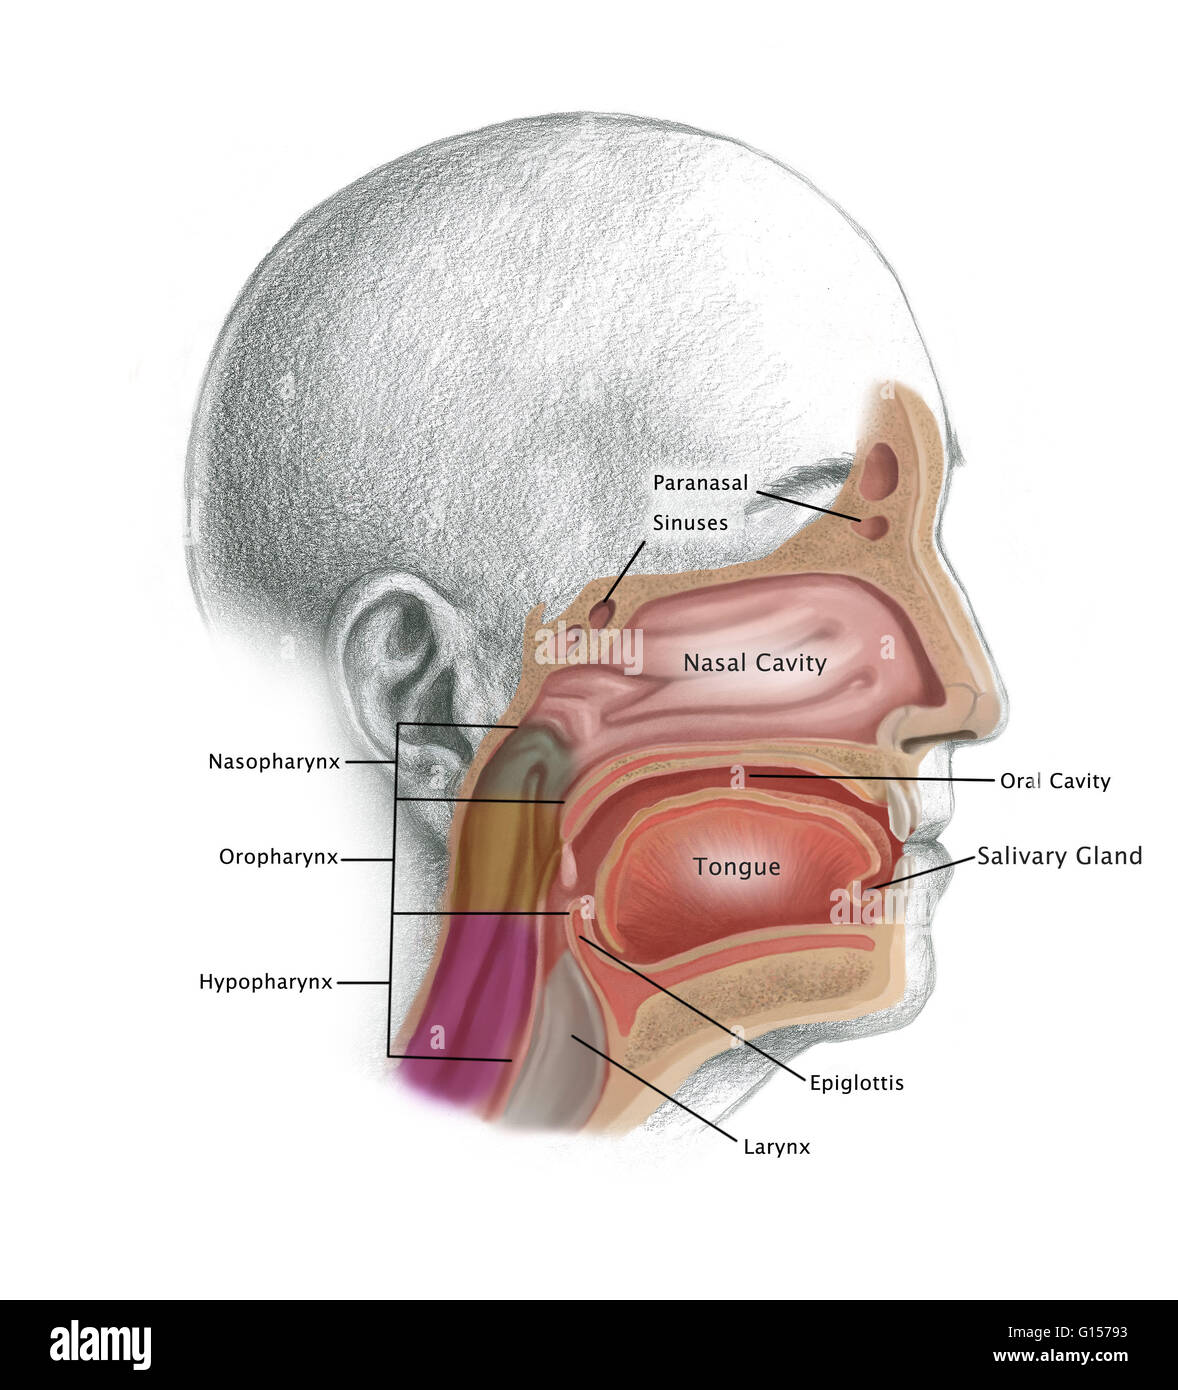 Illustration depicting possible cancer regions of the head and neck ...